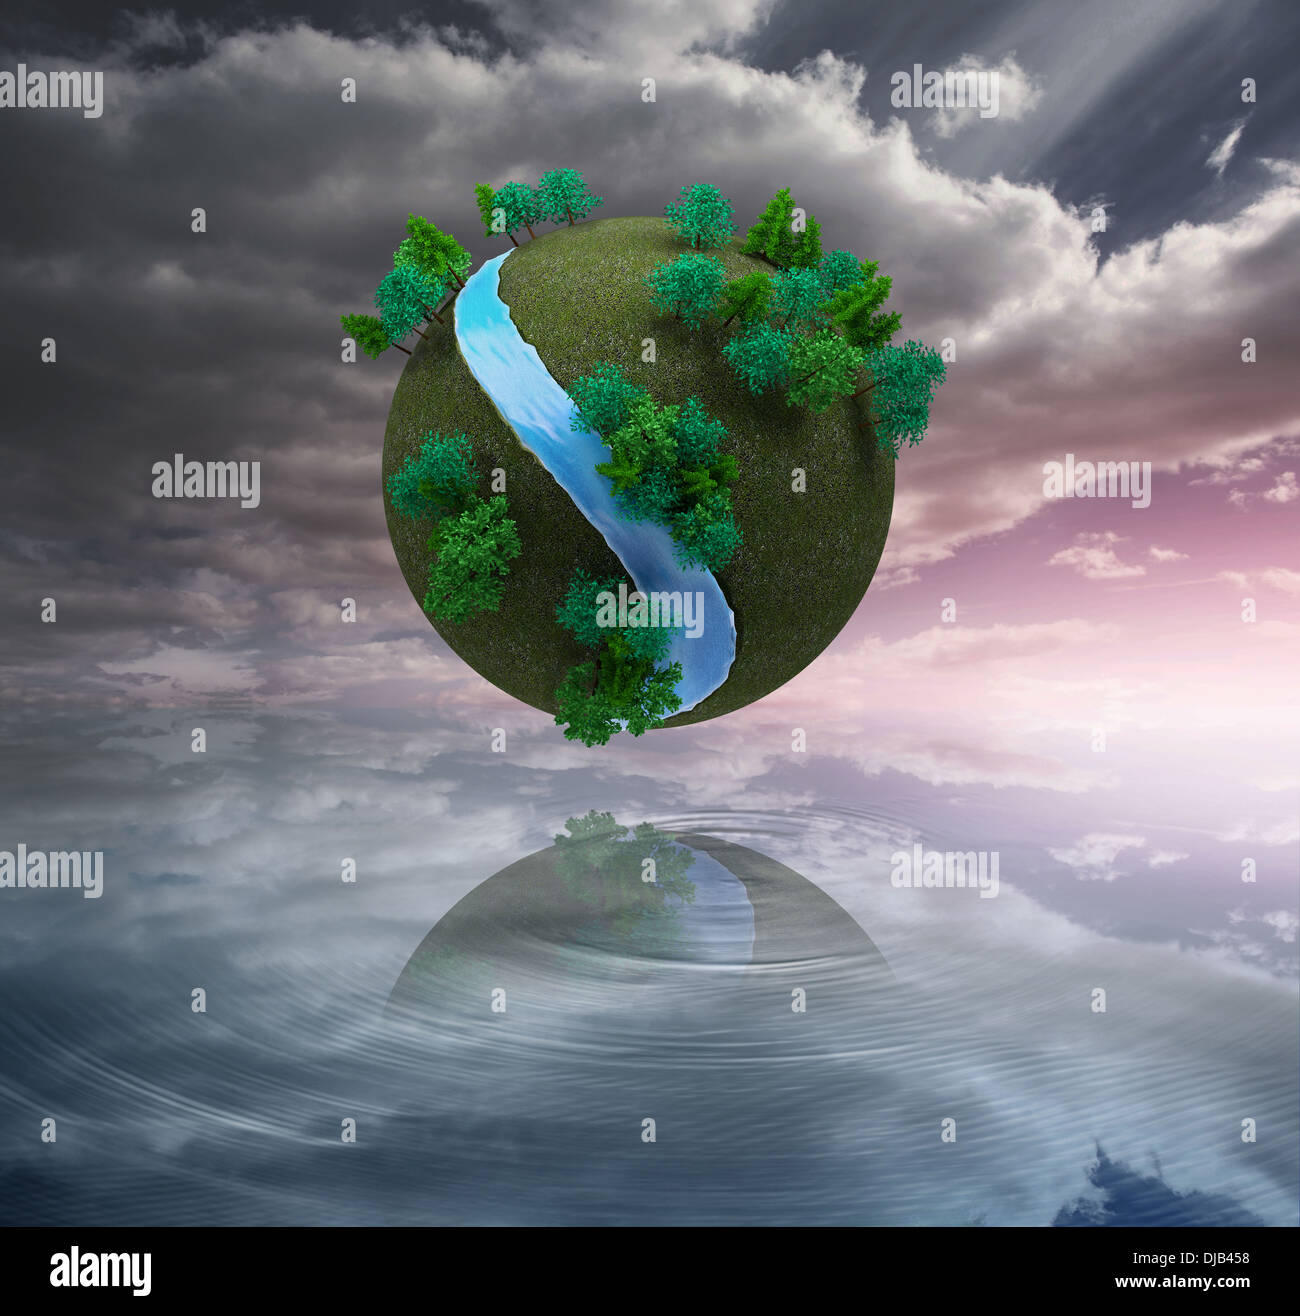 Futuristic earth floating in air Stock Photo